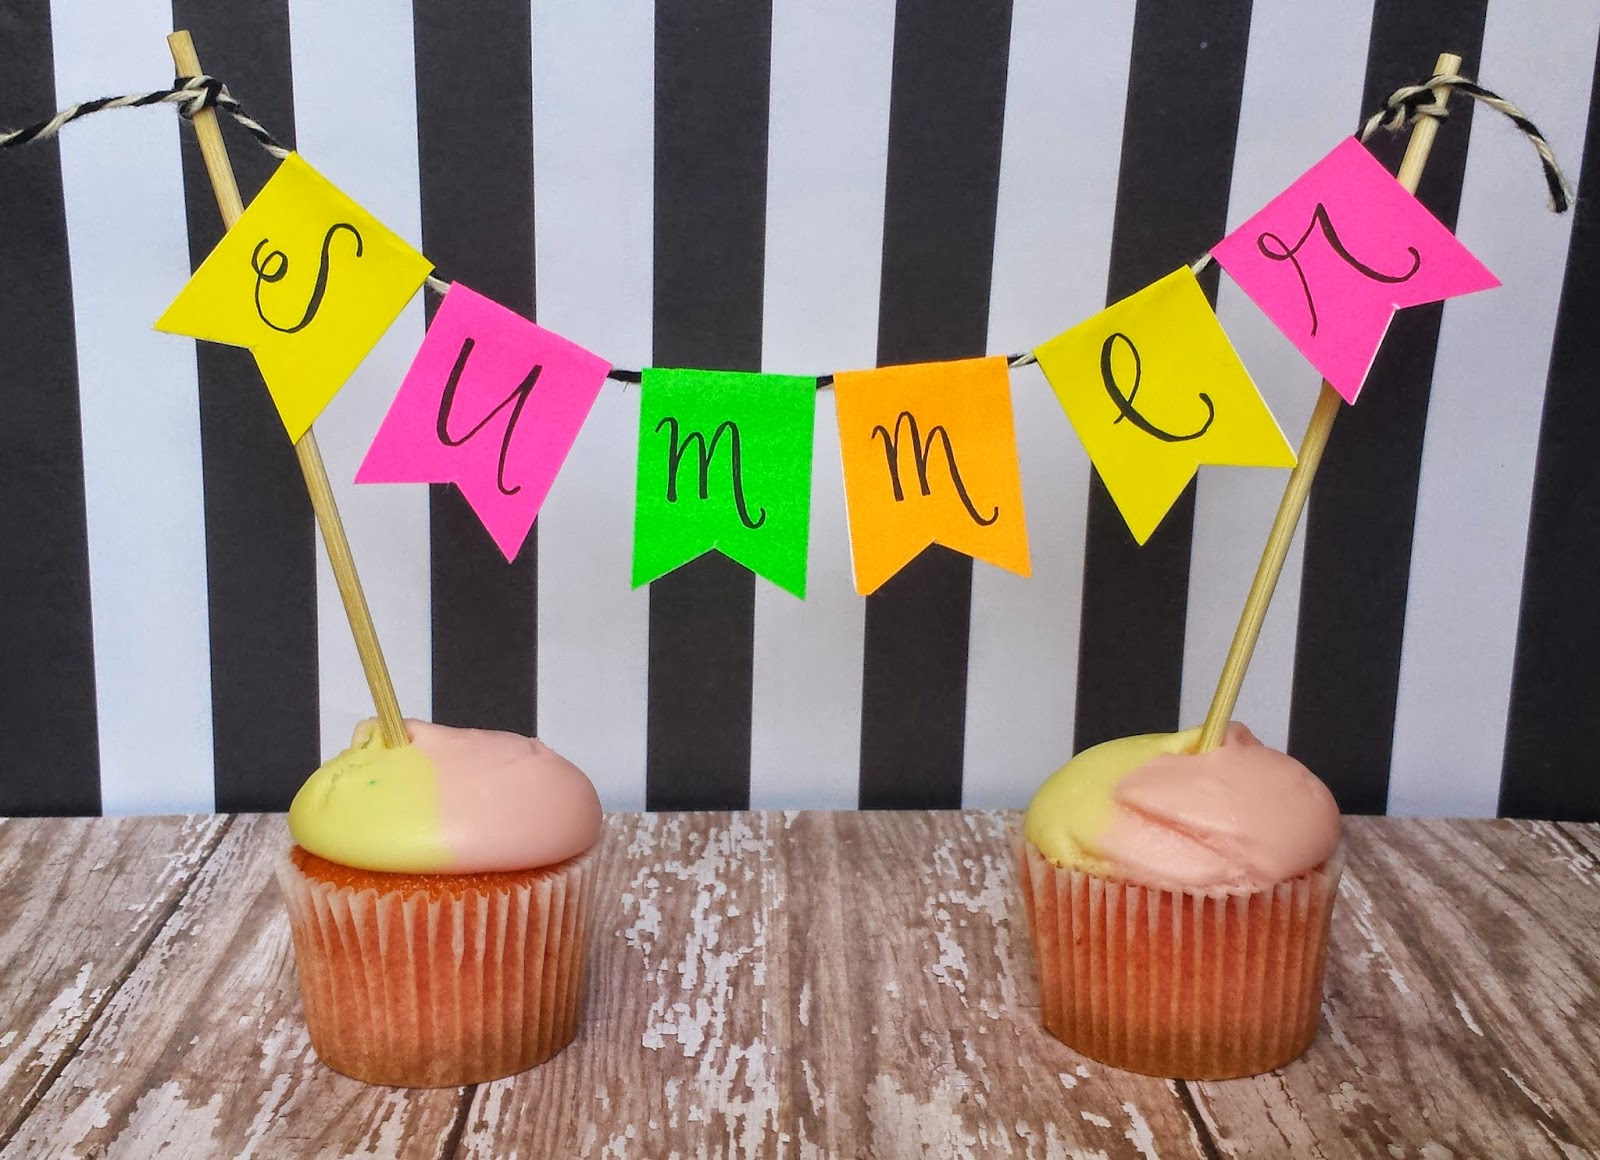 For A Fun Cupcake Or Cake Watermelon Bowl Banner I Used The Rectangle Stickers And Folded Them Over Bakers Twine Wrote SUMMER On Attached To